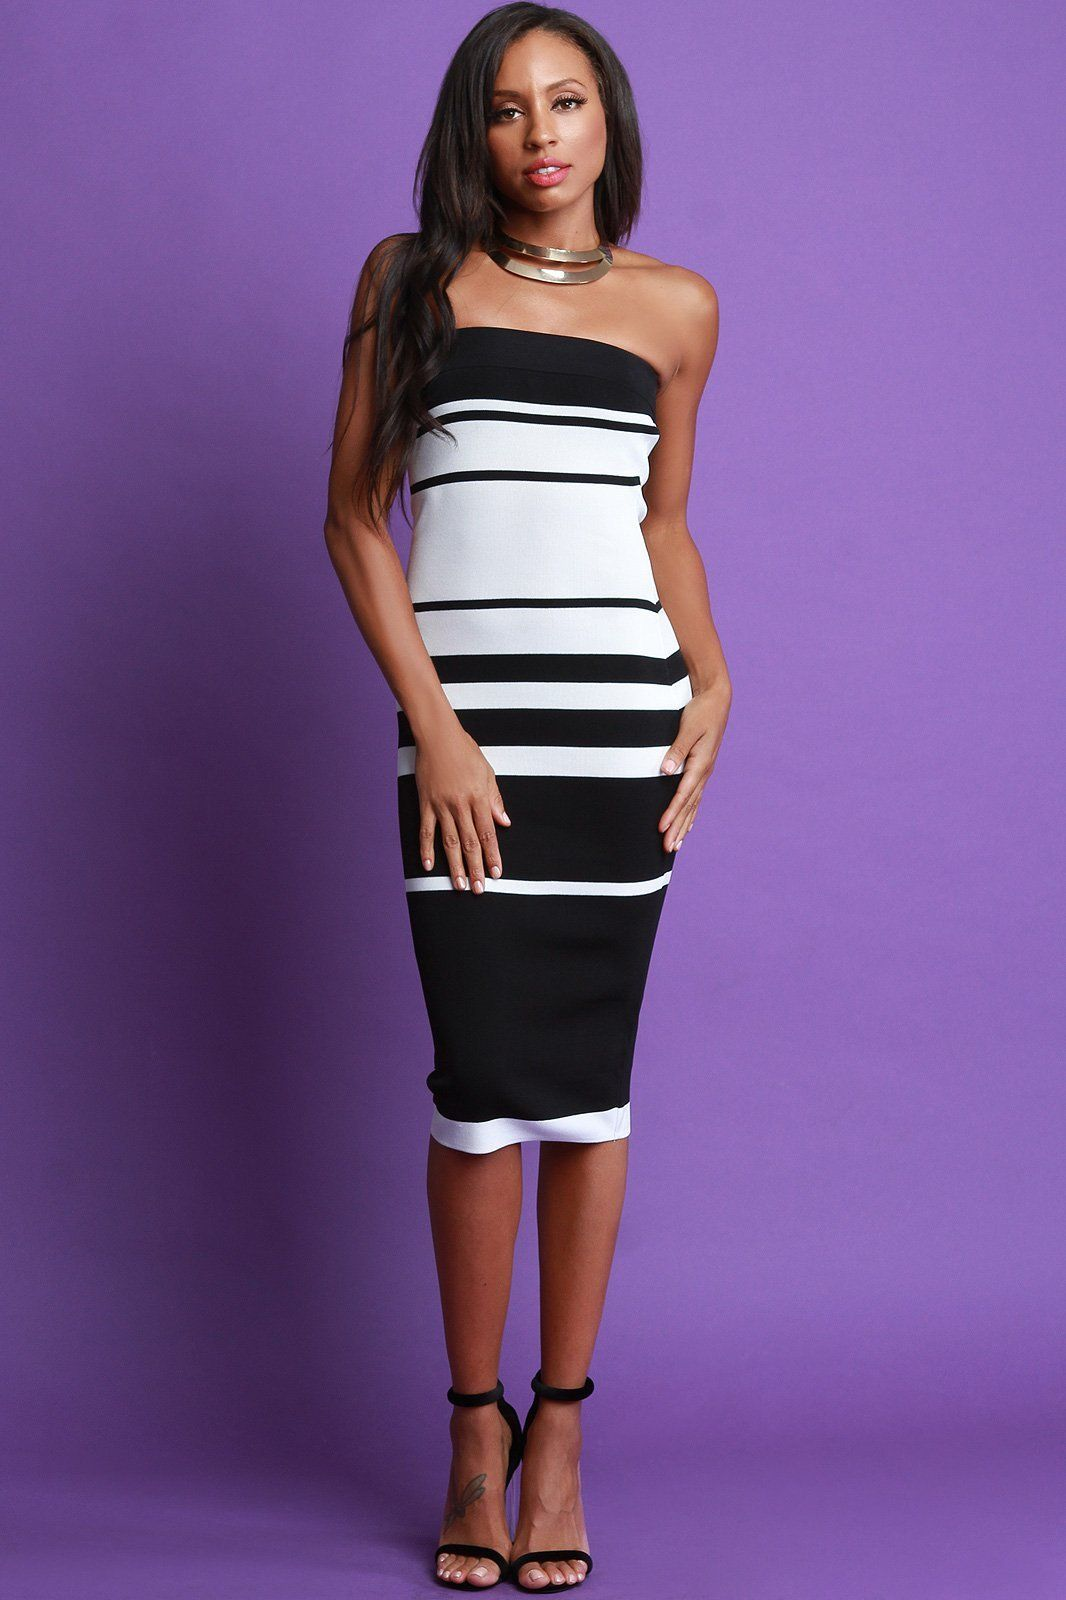 How to striped wear tube dress 2019